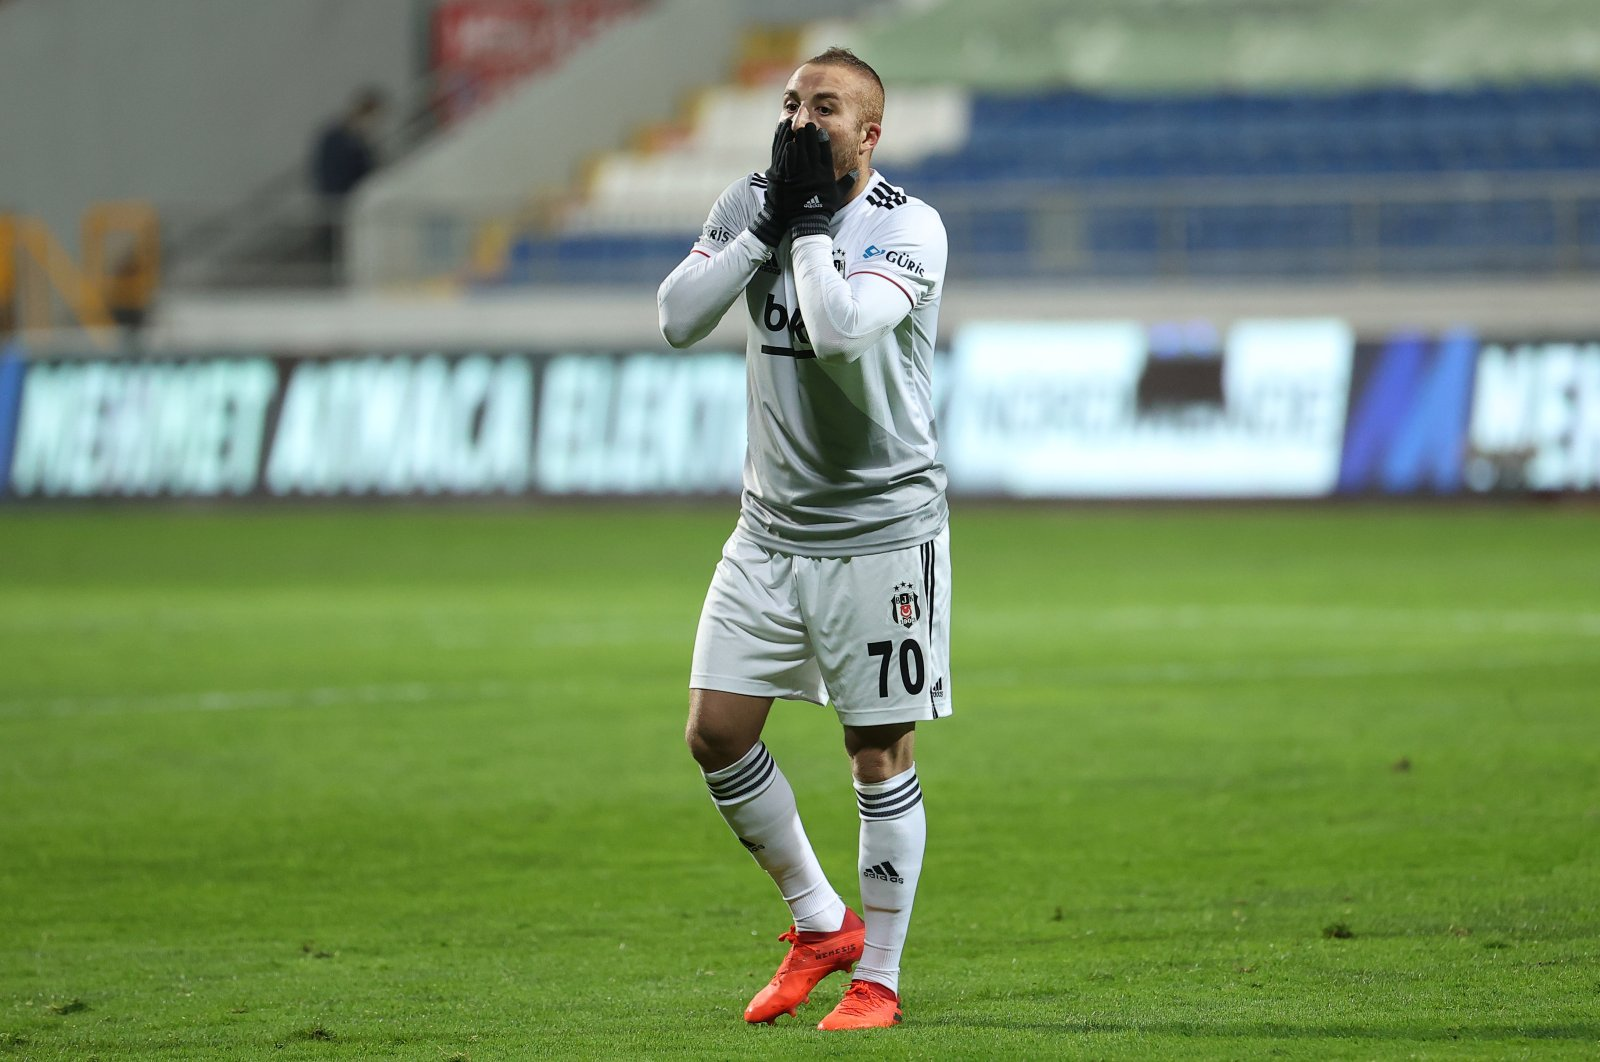 Beşiktaşl winger Gökhan Töre reacts during a Turkish Süper Lig match against Kasımpaşa at the Recep Tayyip Erdoğan Stadium, Istanbul, Turkey, April 4, 2021. (AA photo)